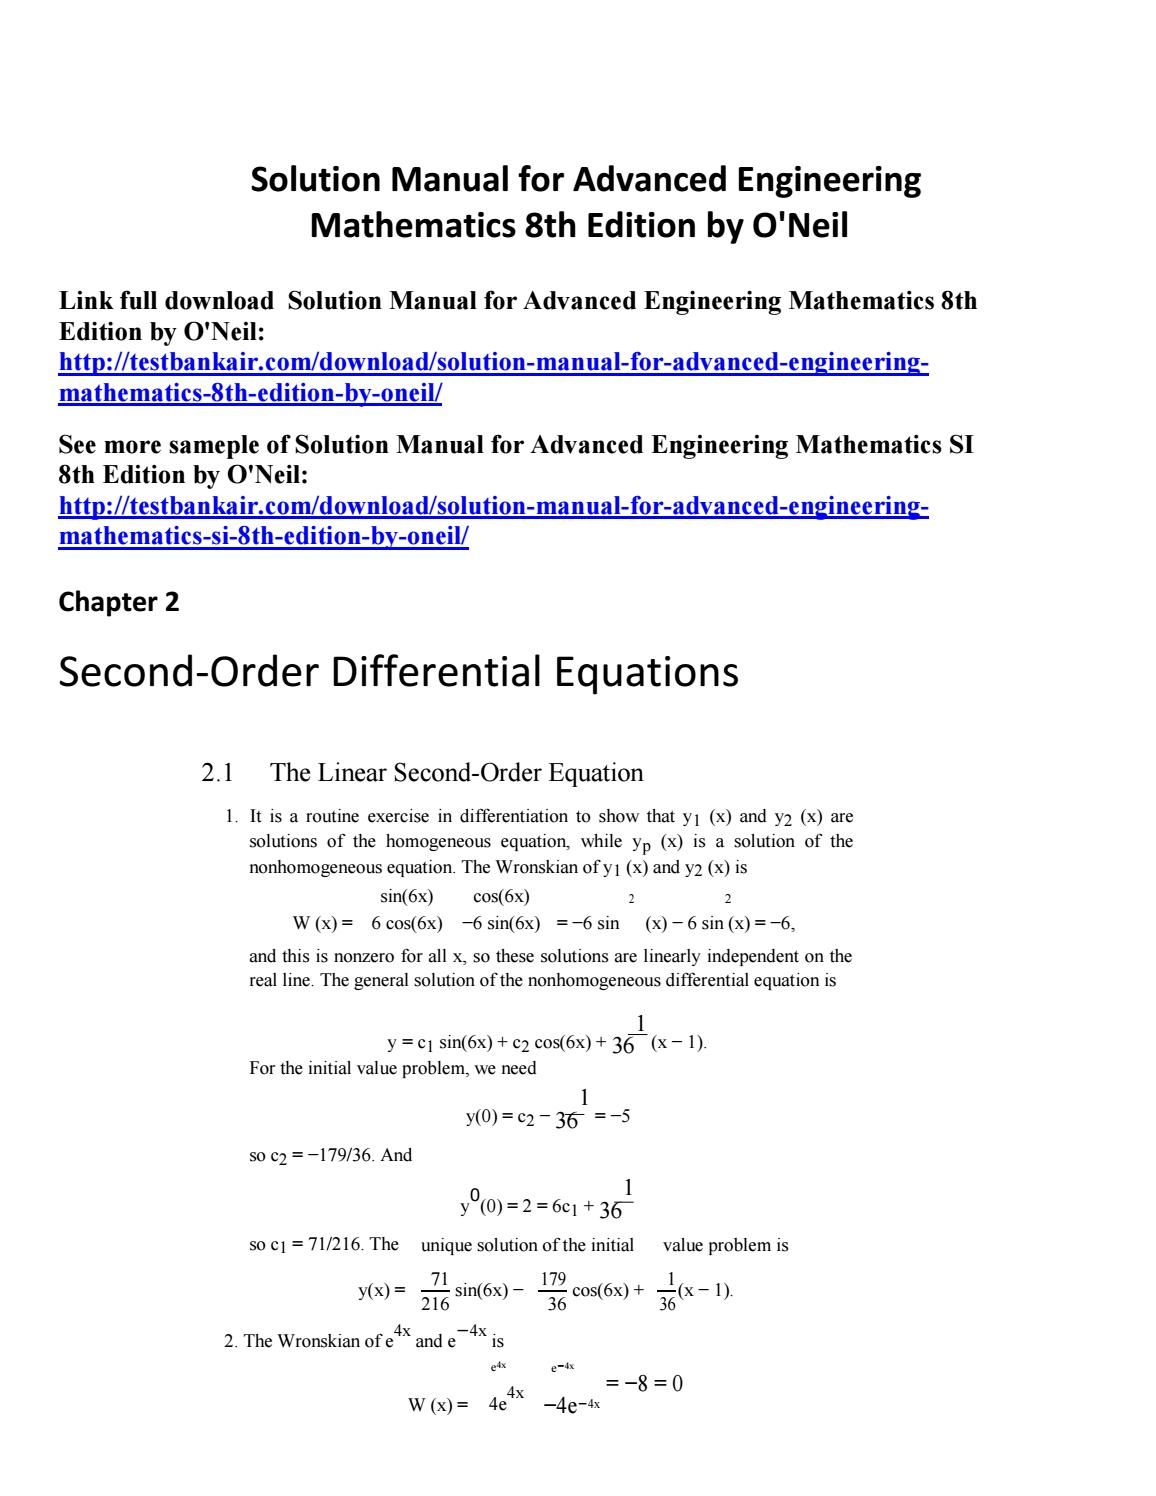 Solution manual for advanced engineering mathematics 8th edition by o'neil